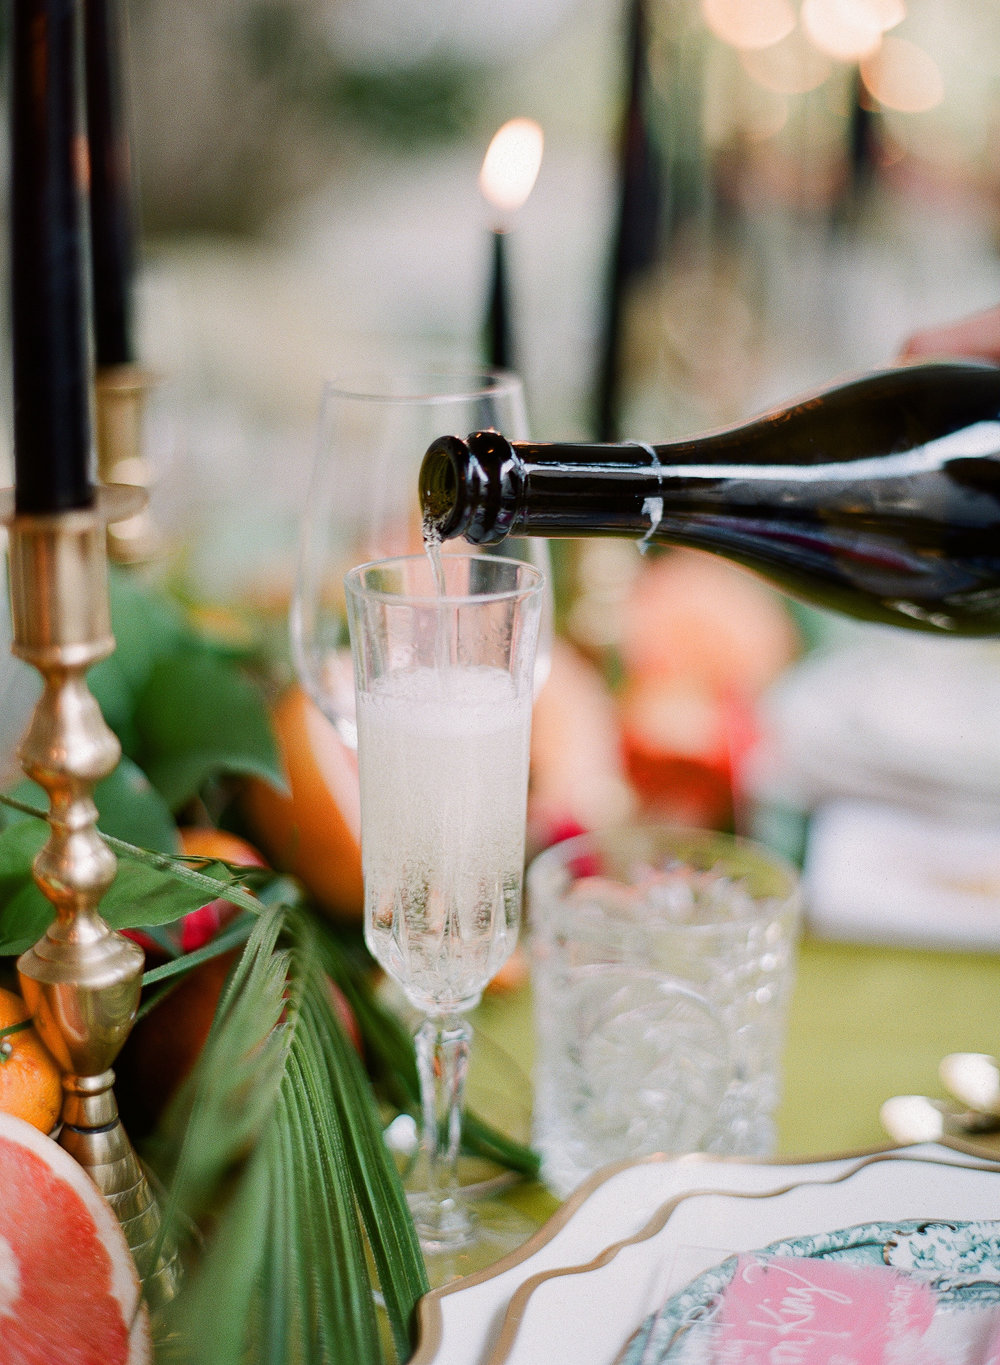 Charleston Porch Party, Events by Reagan, Dinner Party, Tropical Party, Charleston Event Planner , Champagne Glass